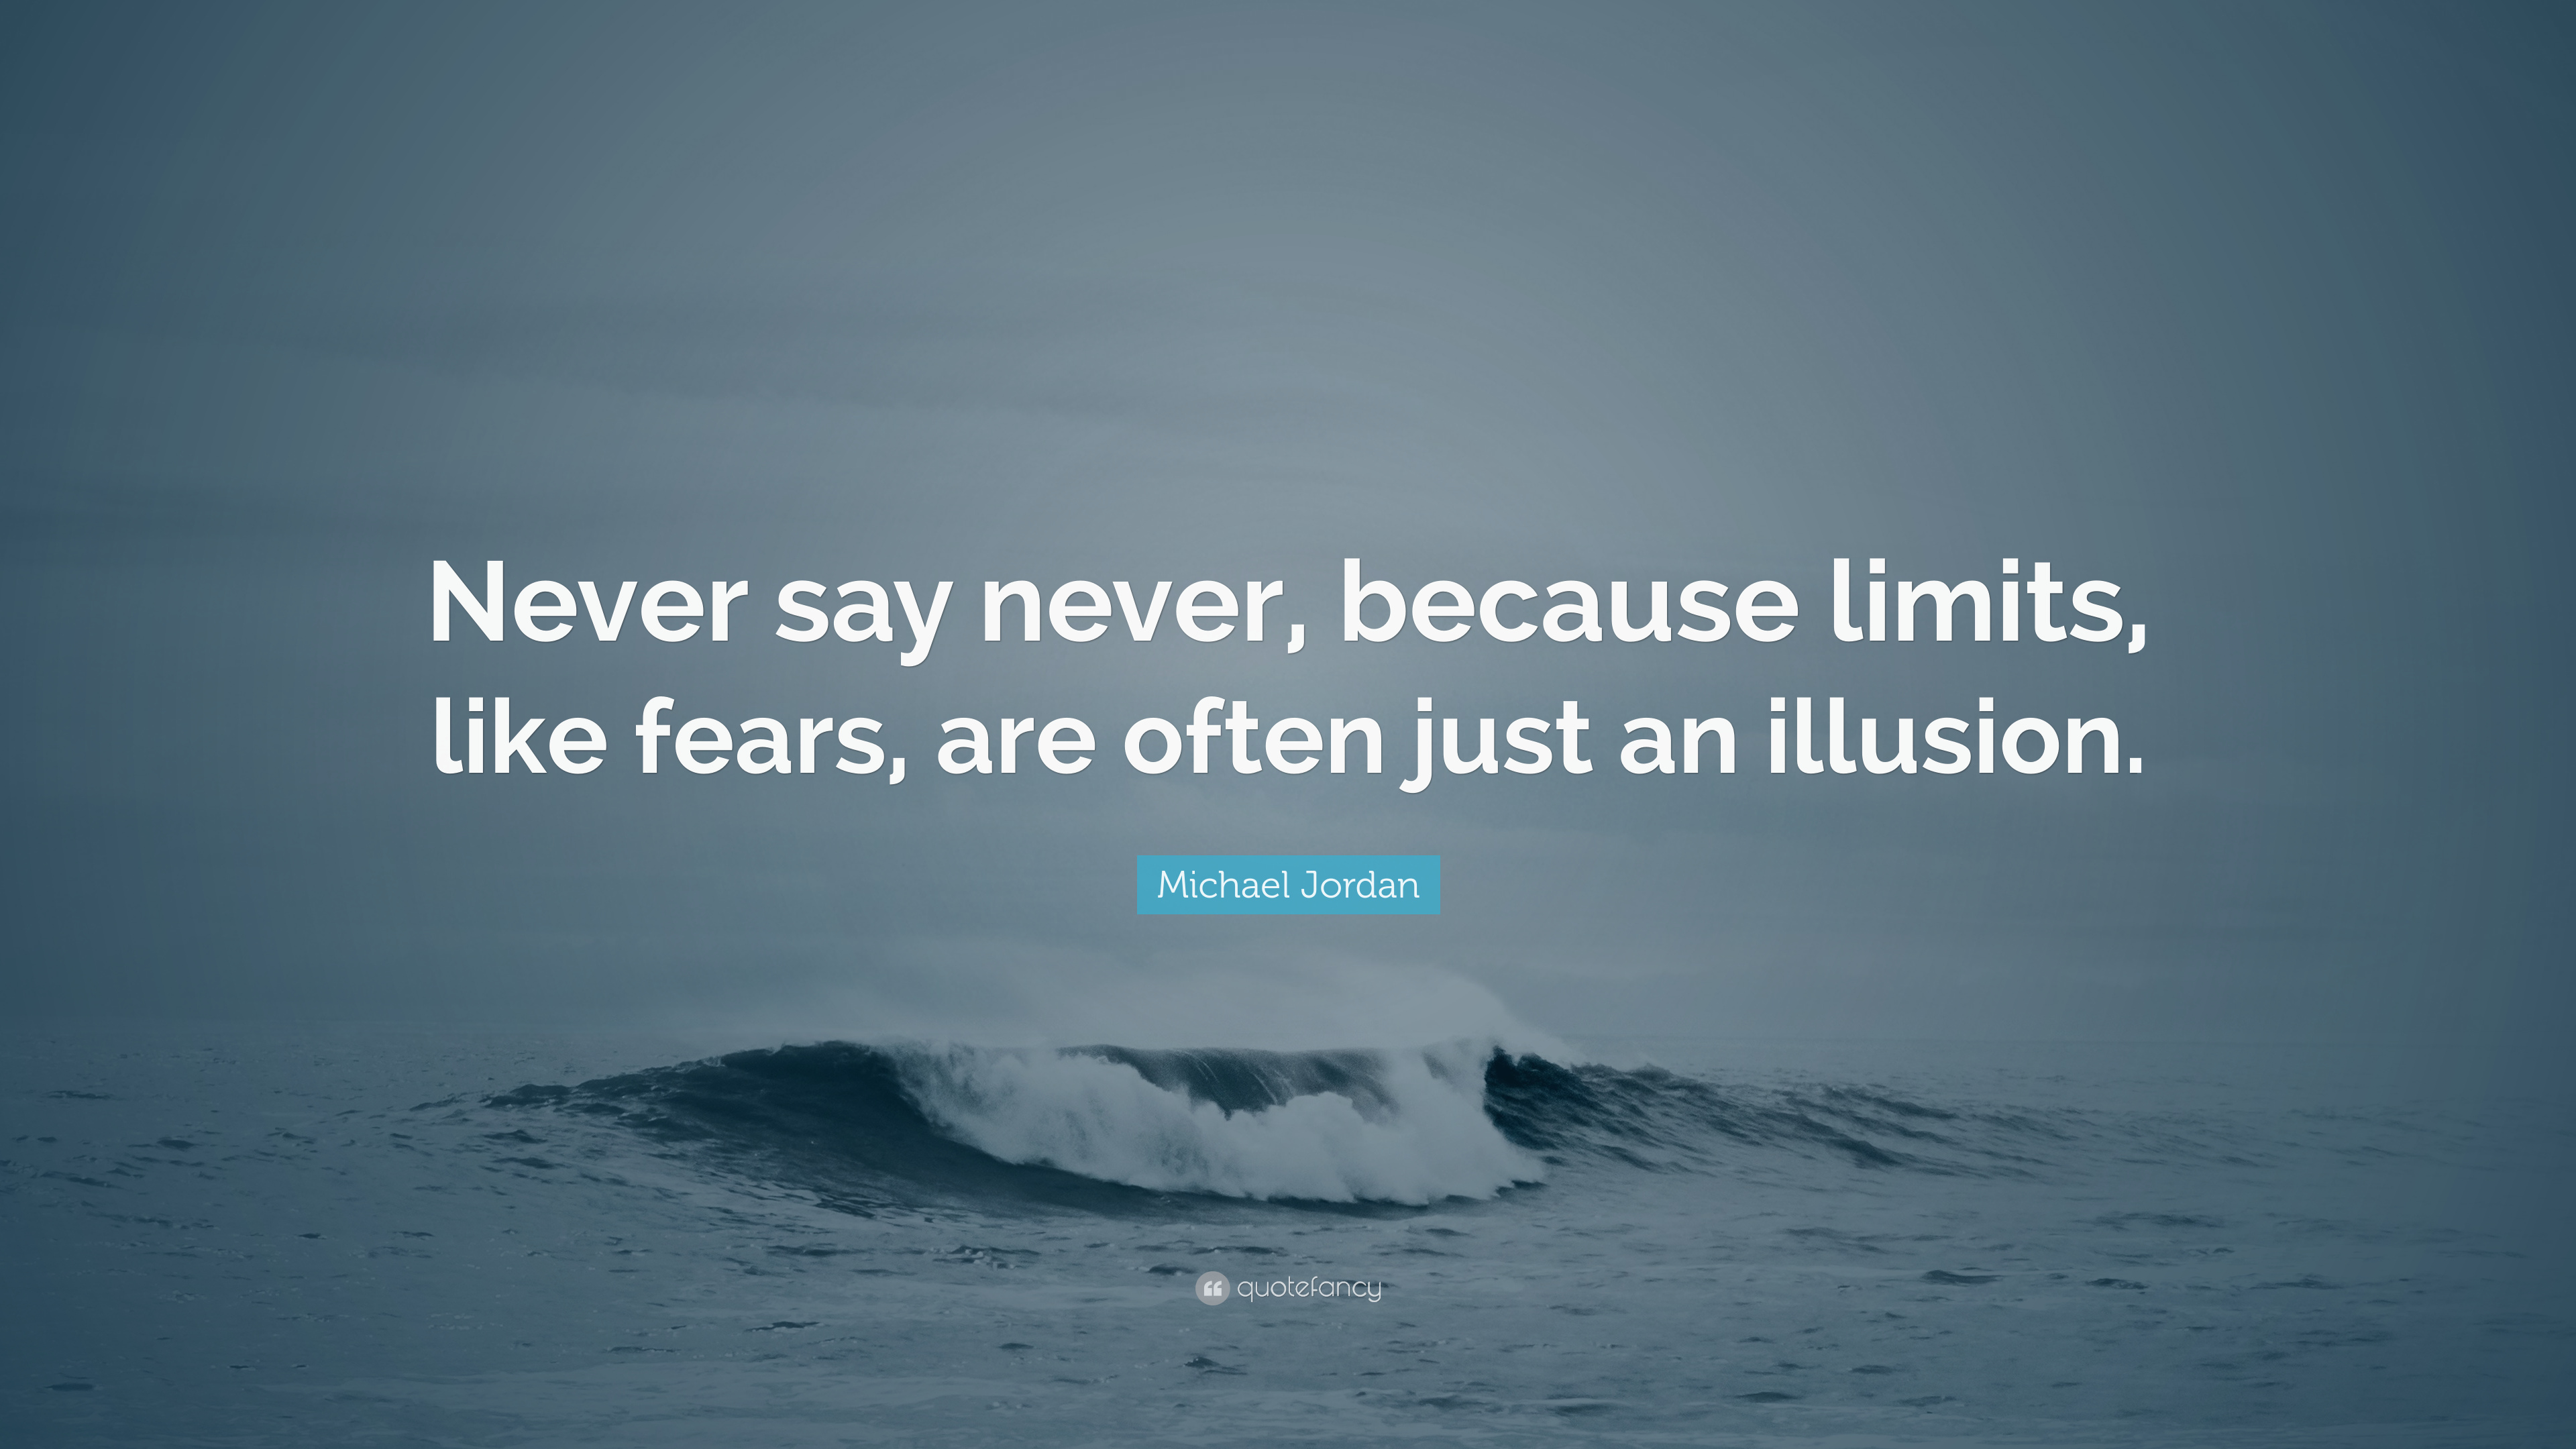 Limits Quotes Wallpaper Michael Jordan Quote Never Say Never Because Limits